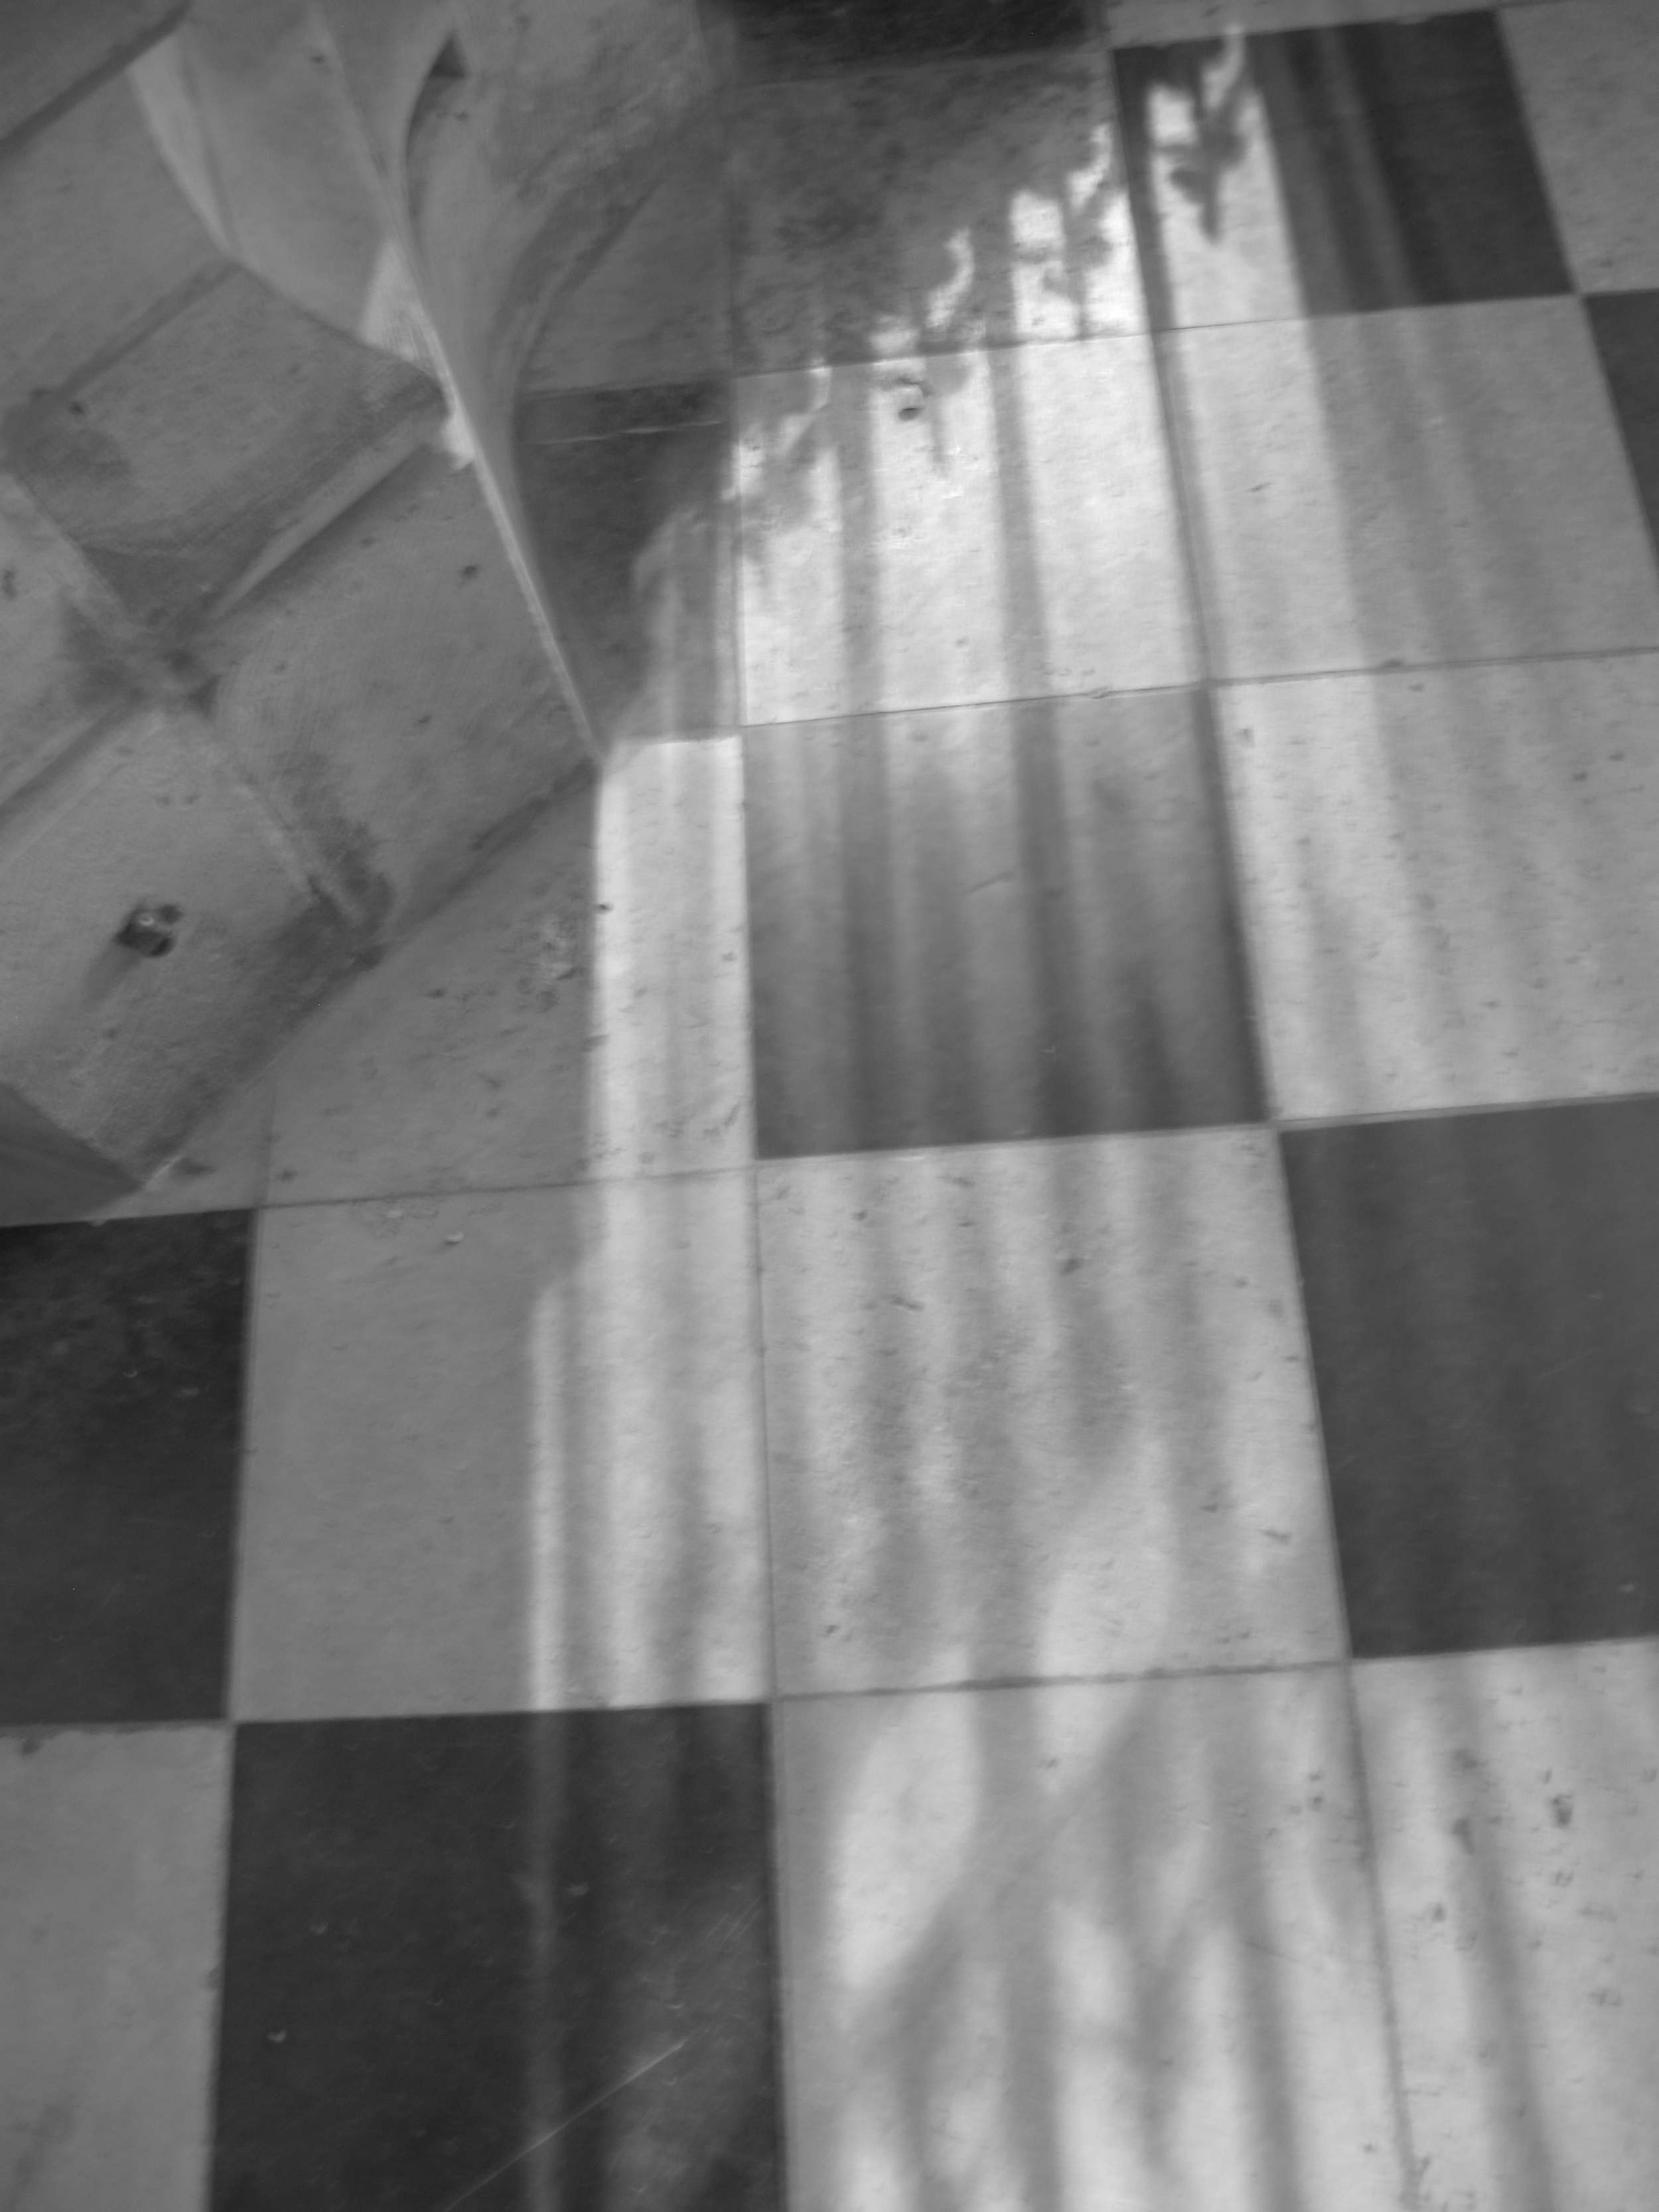 Shadow and light from the windows of Beauvais - shadows on the floor tiles